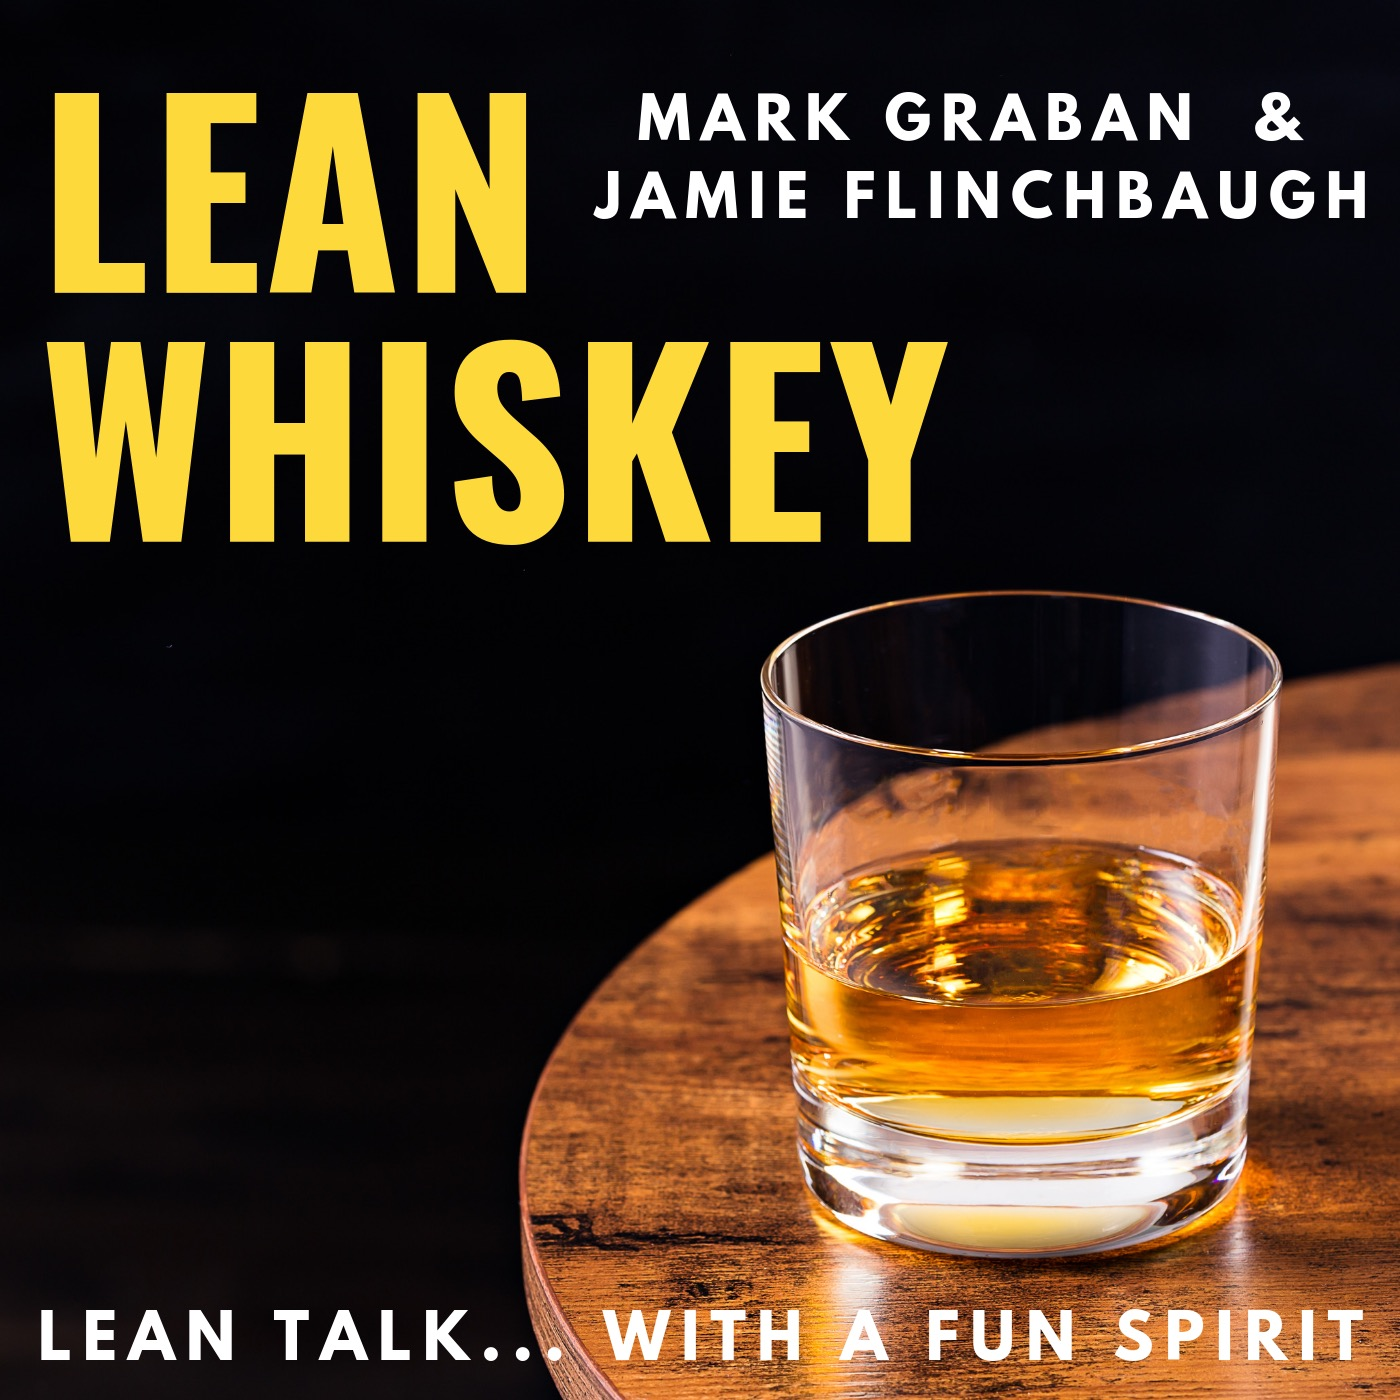 Just the Two of Us (Mark Graban & Jamie Flinchbaugh), Islay Scotch & More